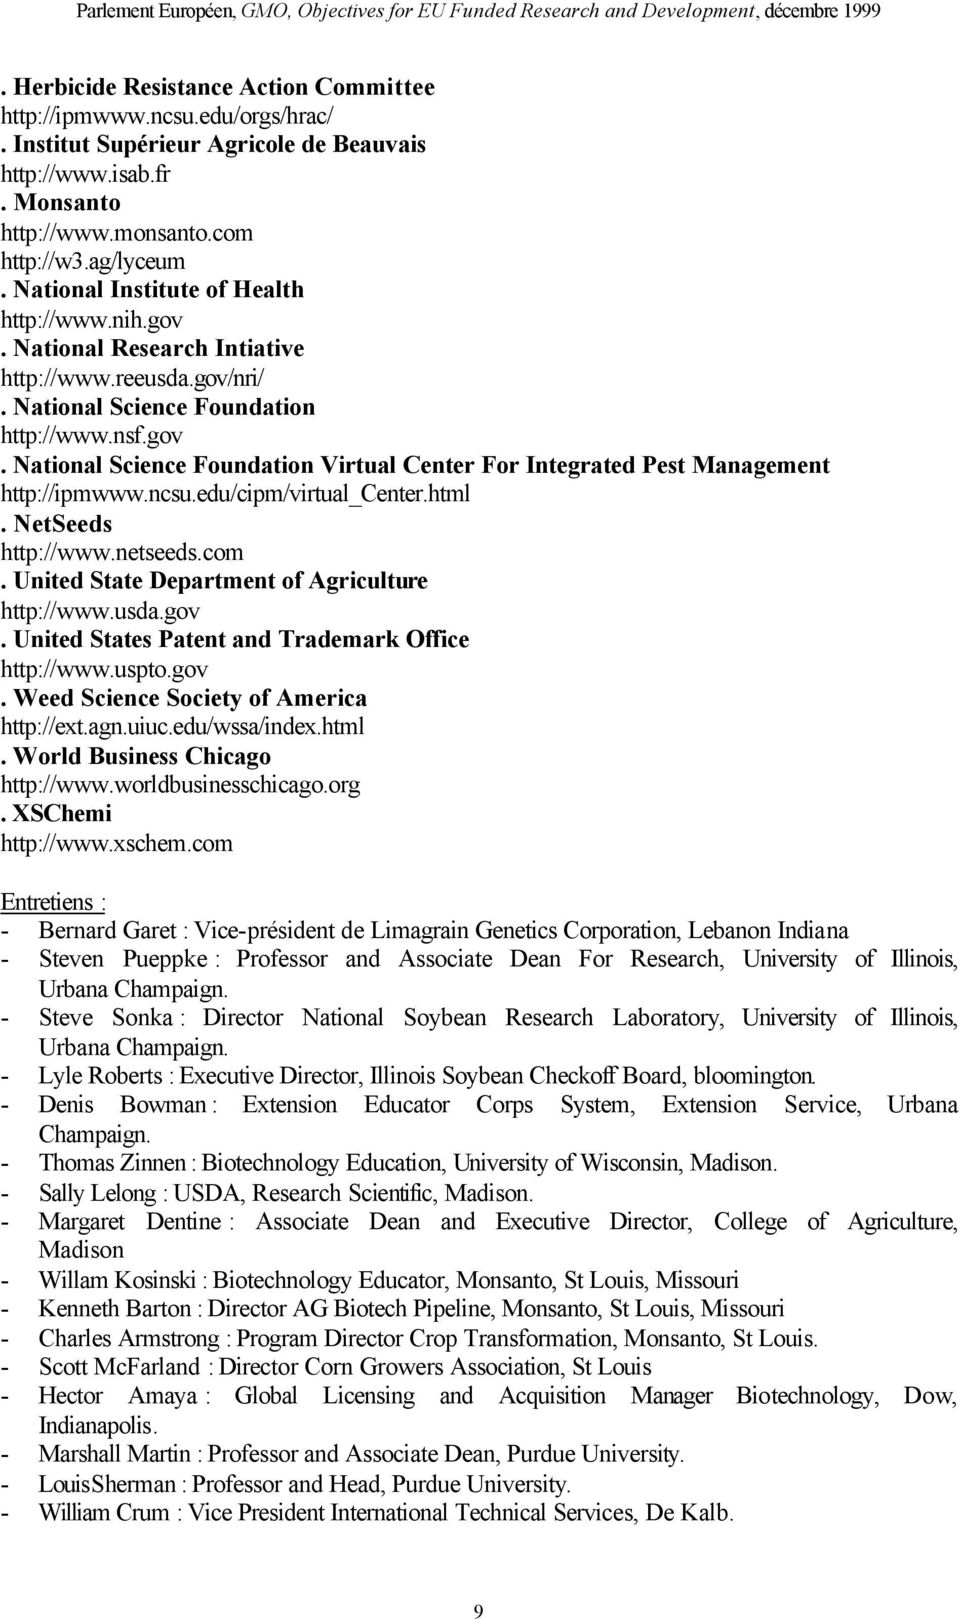 ncsu.edu/cipm/virtual_center.html. NetSeeds http://www.netseeds.com. United State Department of Agriculture http://www.usda.gov. United States Patent and Trademark Office http://www.uspto.gov. Weed Science Society of America http://ext.